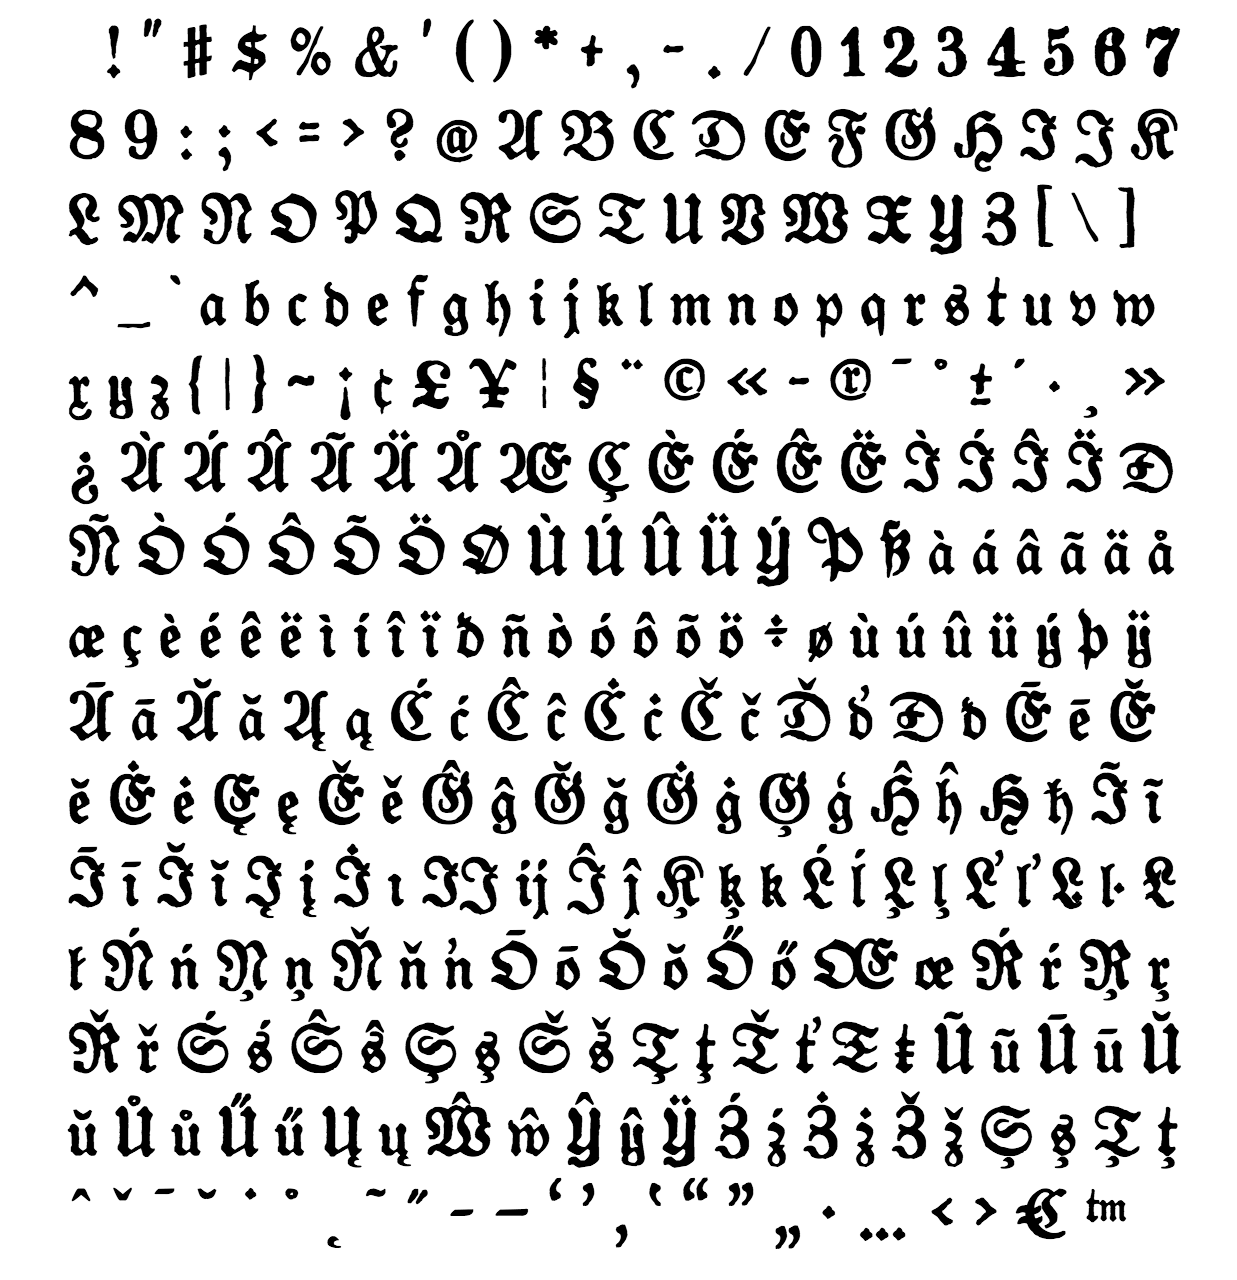 gotyk font  - complete character list